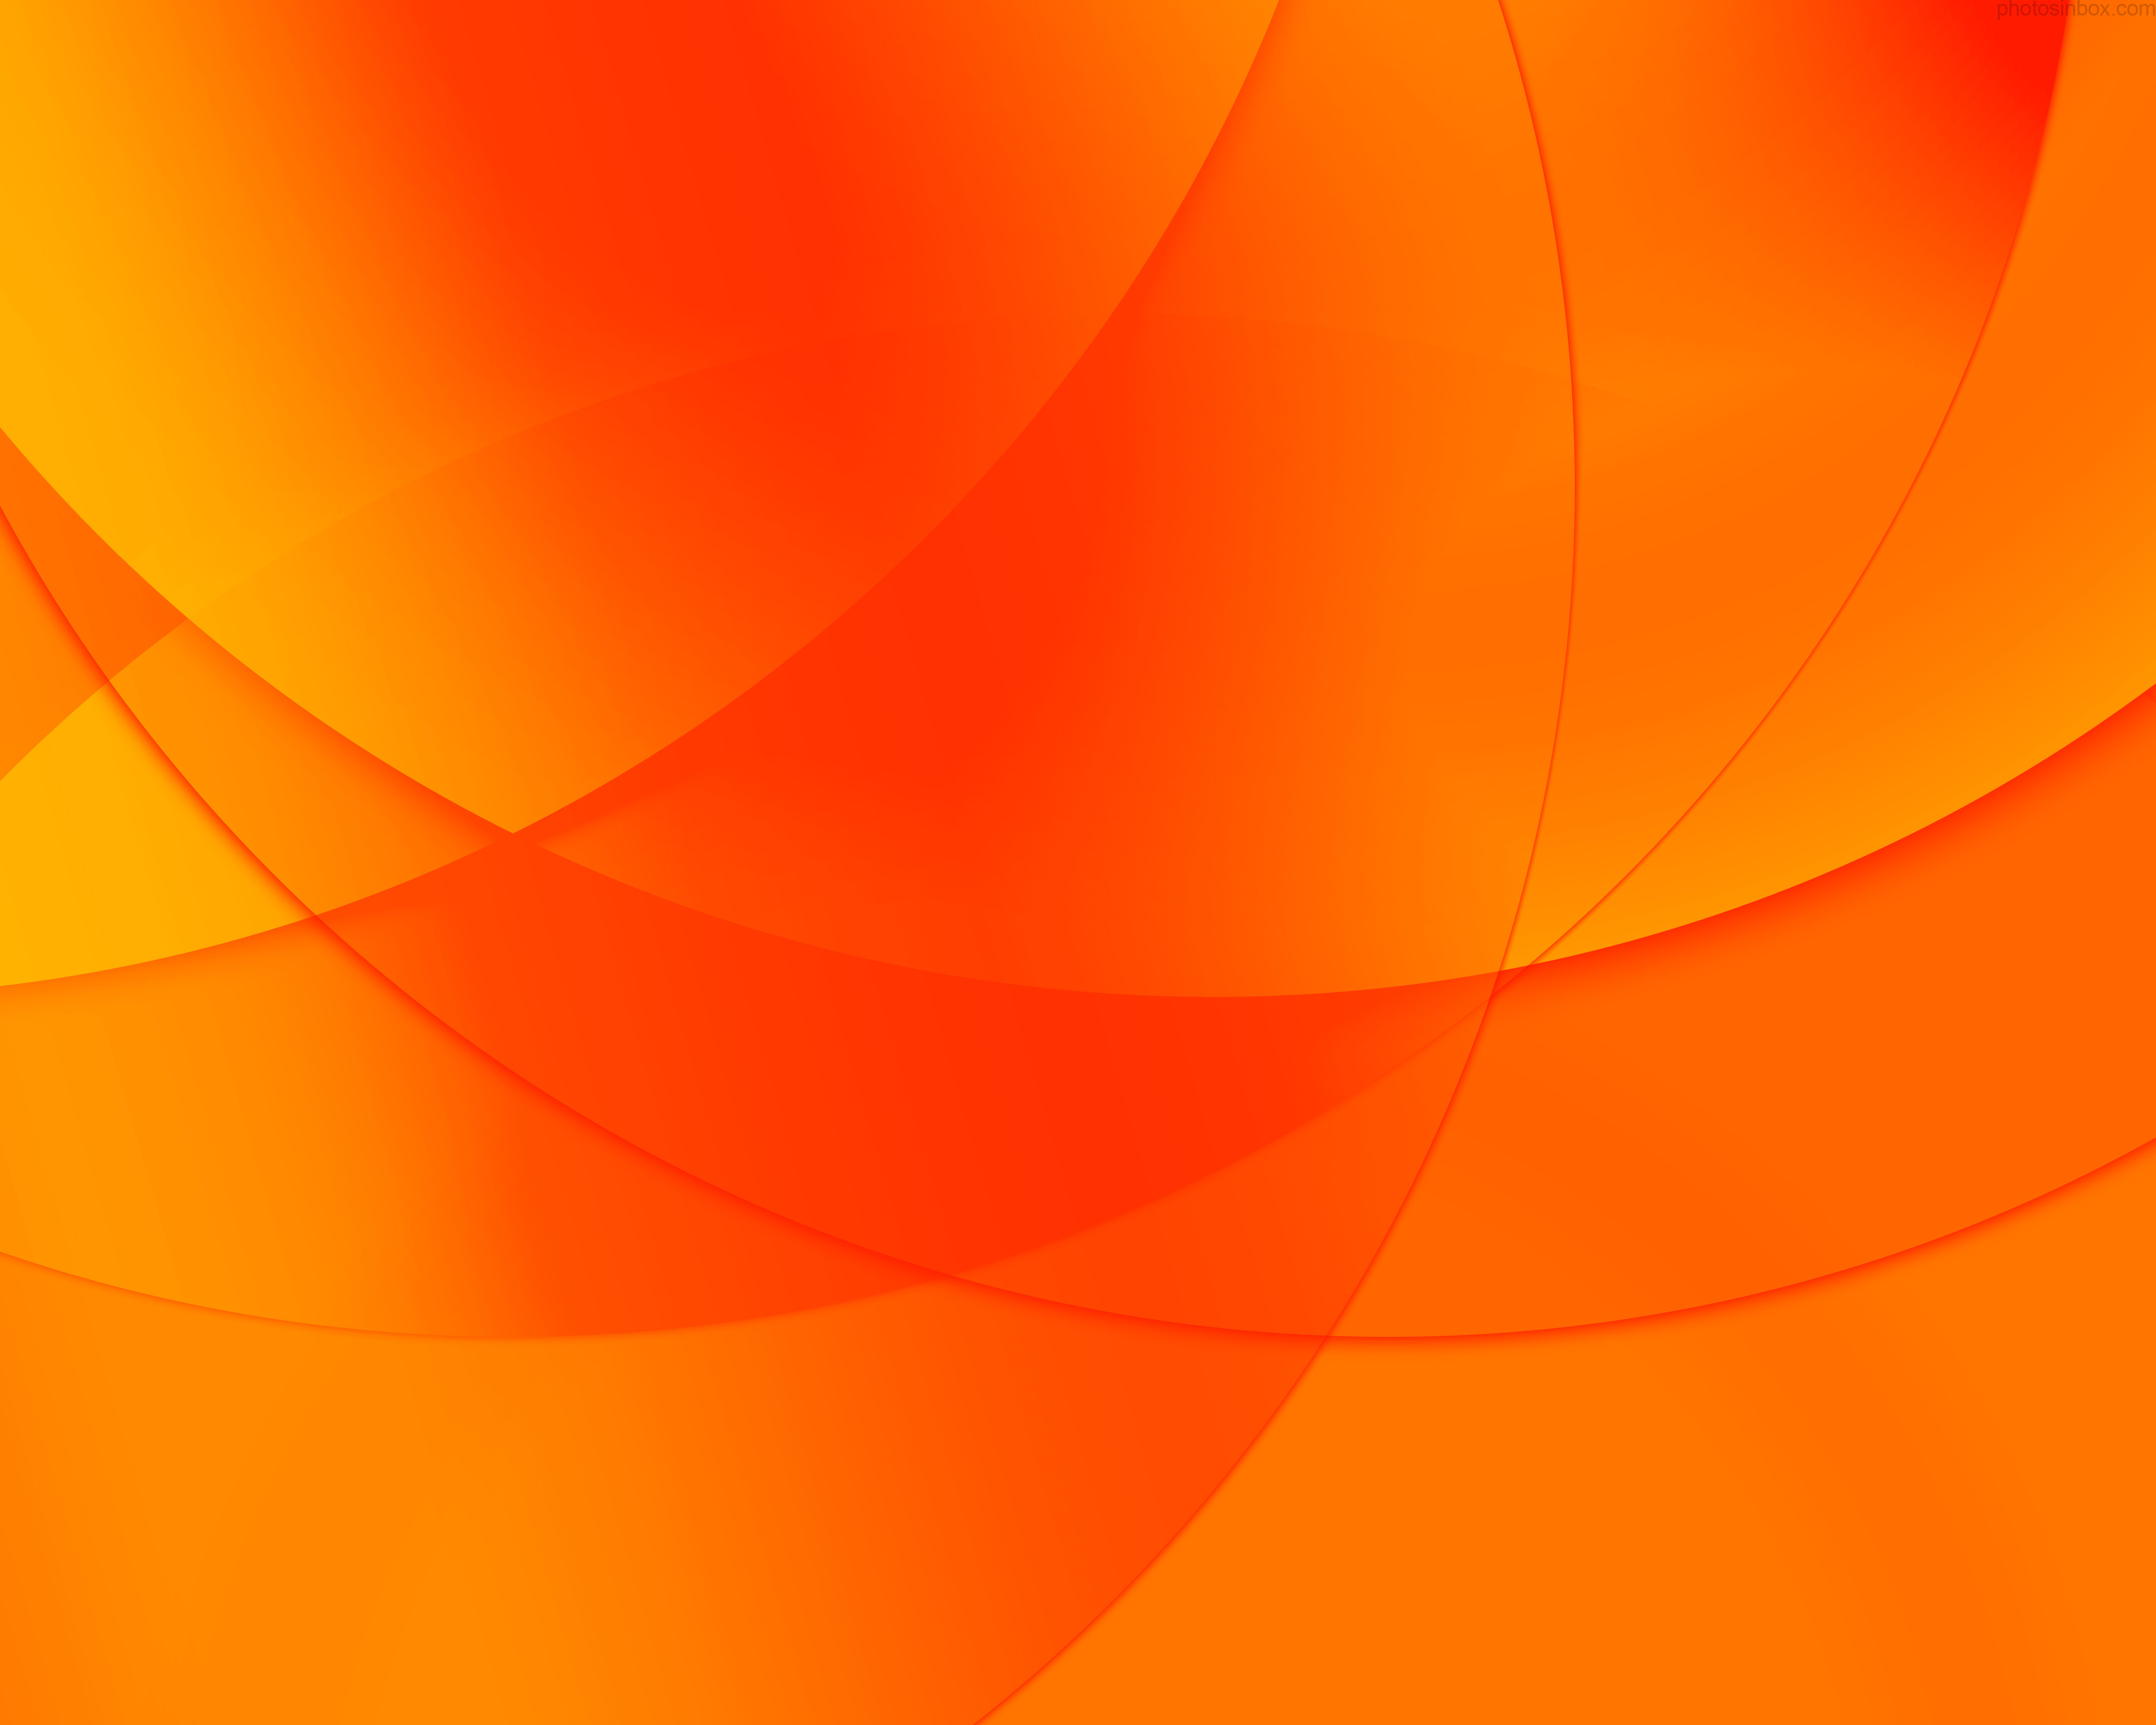 Abstract orange background wallpaper 5000x4000